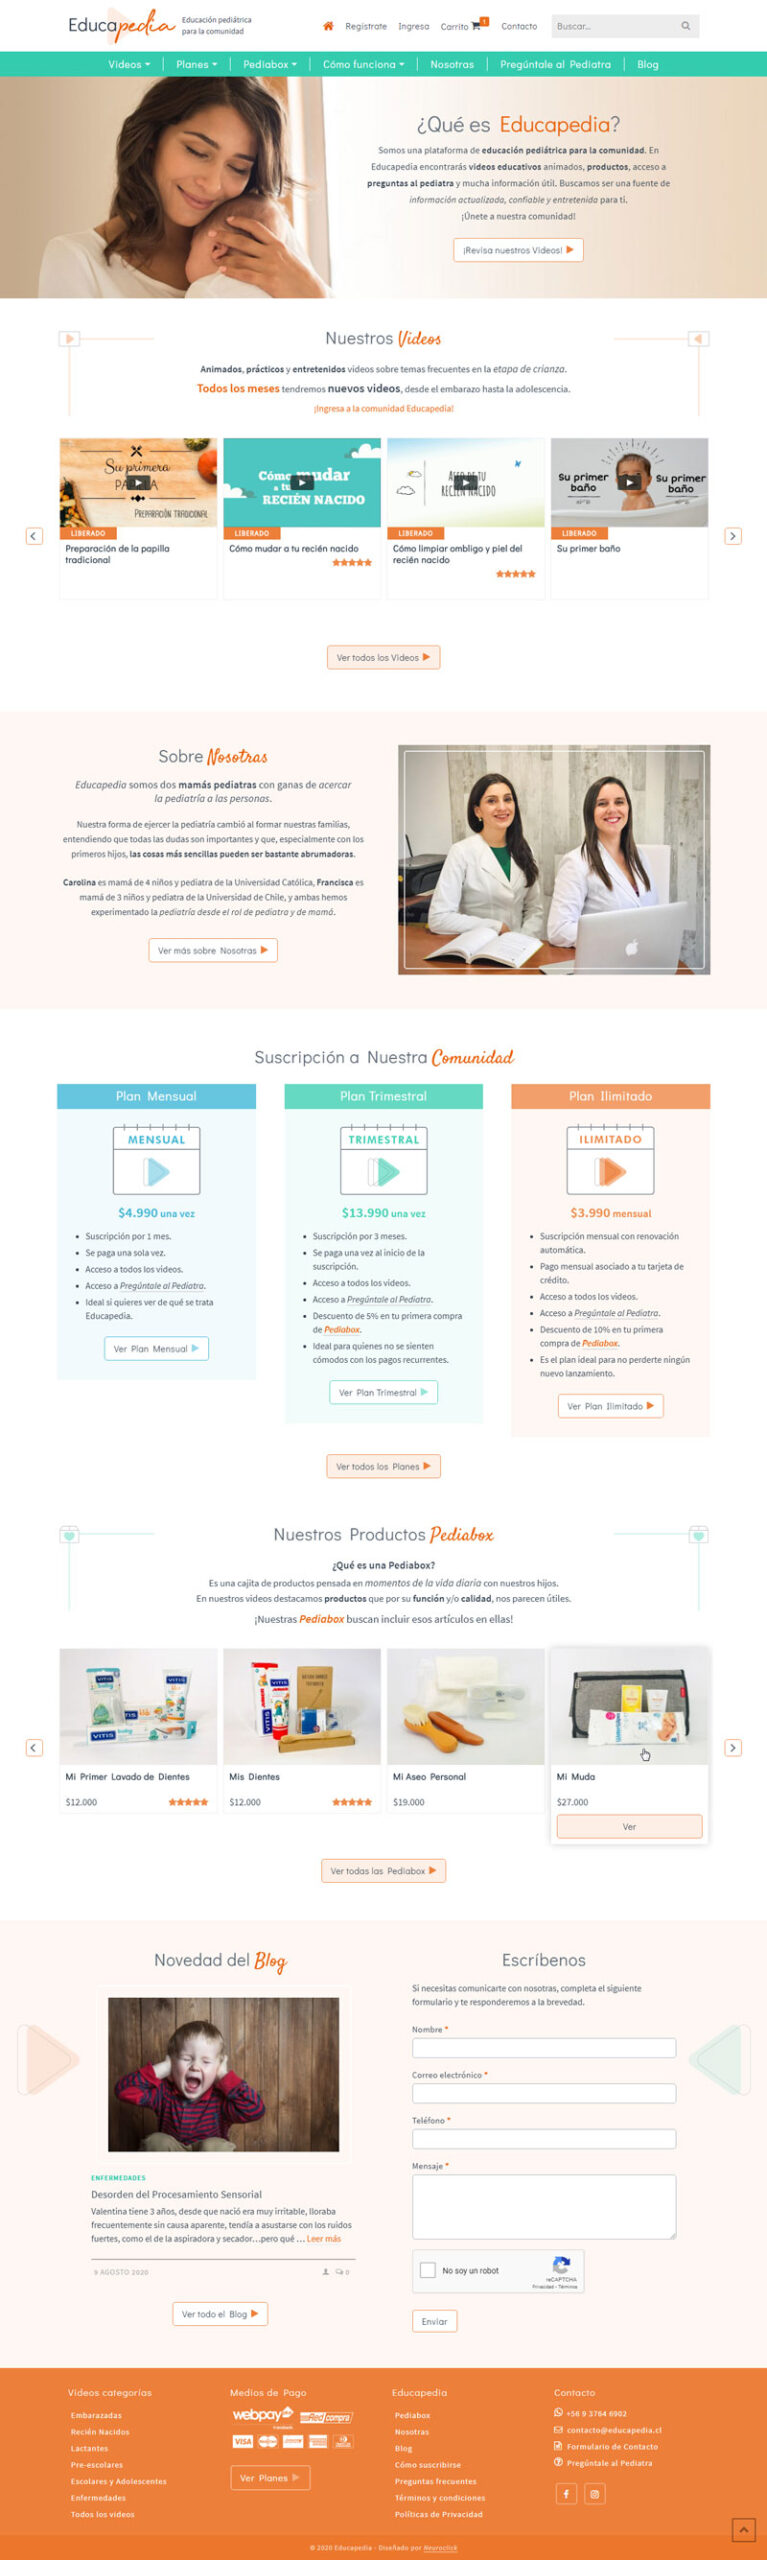 Neuroclick-educapedia-home